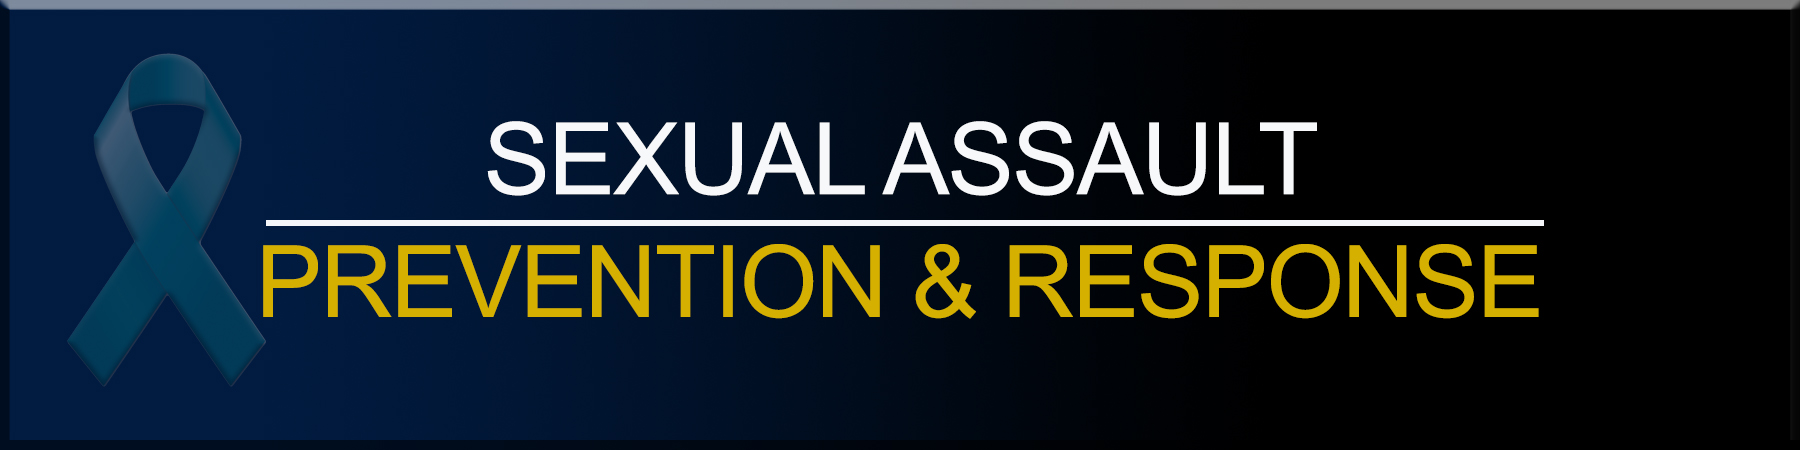 Link to Sexual Assault Prevention and Response